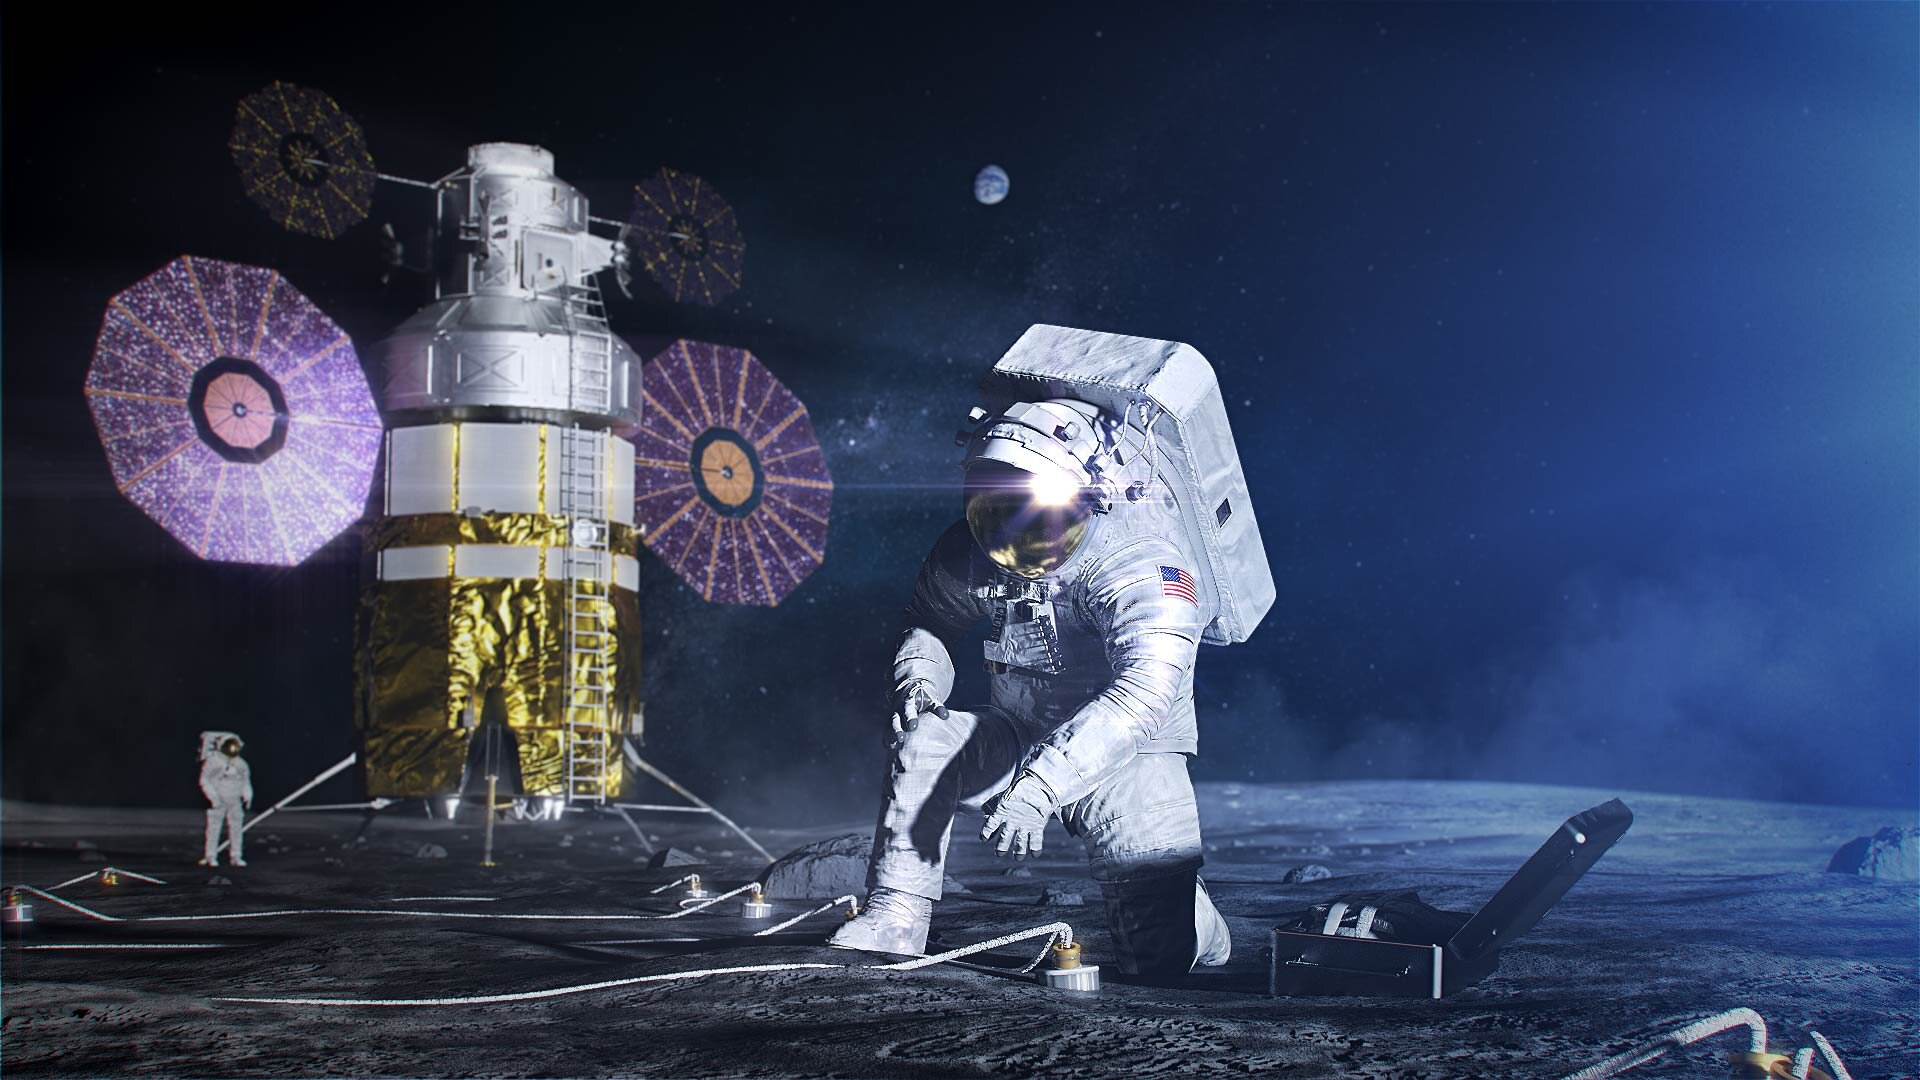 An artist's illustration of astronauts on the lunar surface in Exploration Extravehicular Mobility Units. Credit: NASA